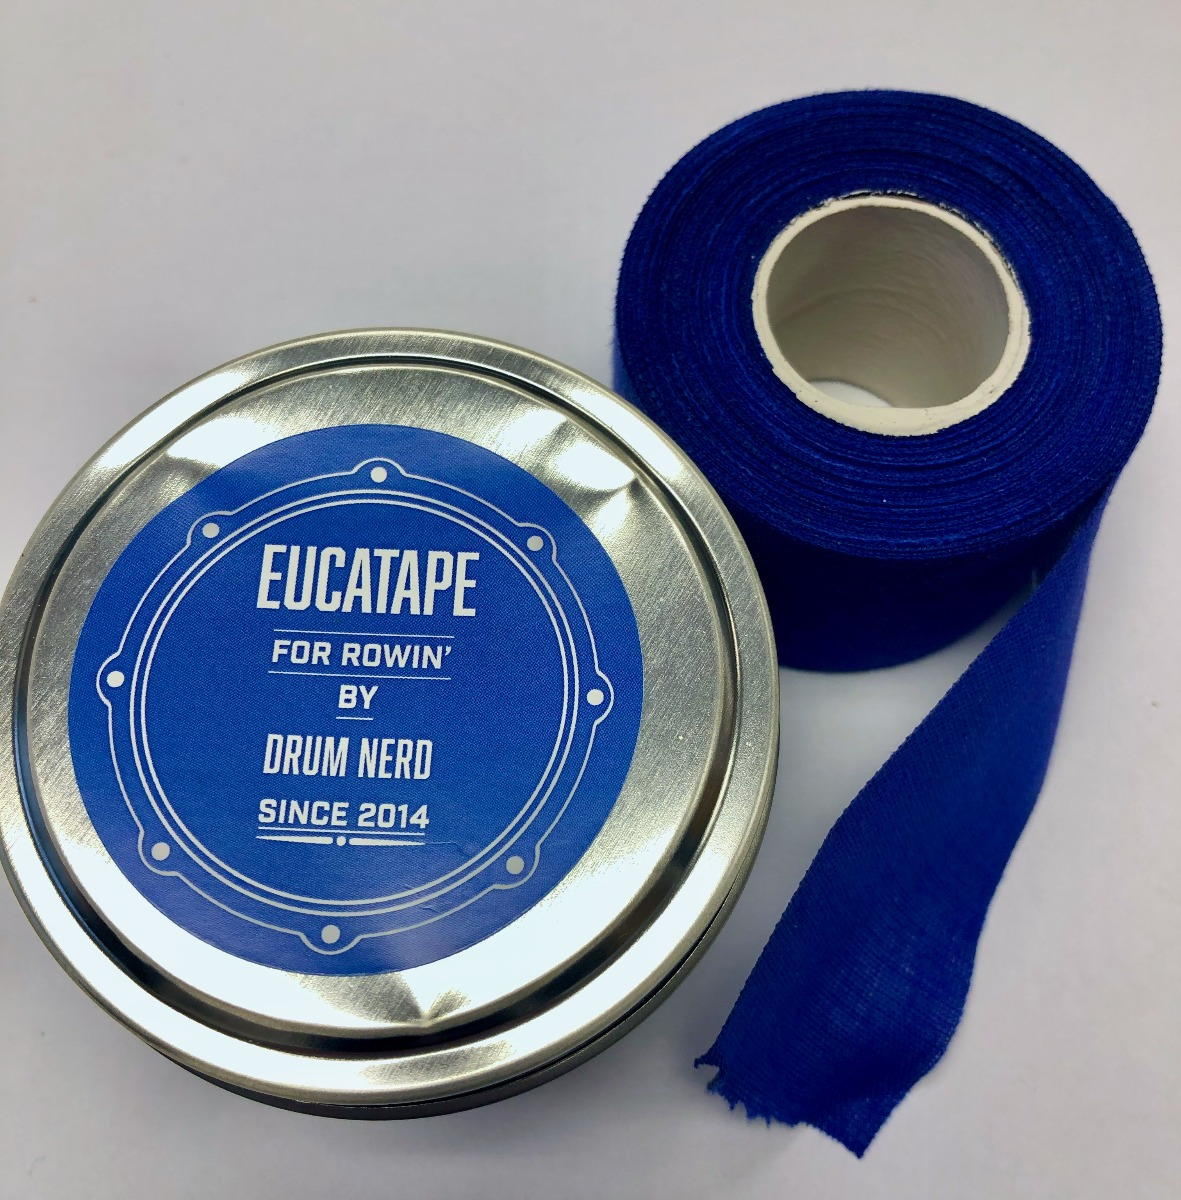 Eucatape for Rowing - Blue